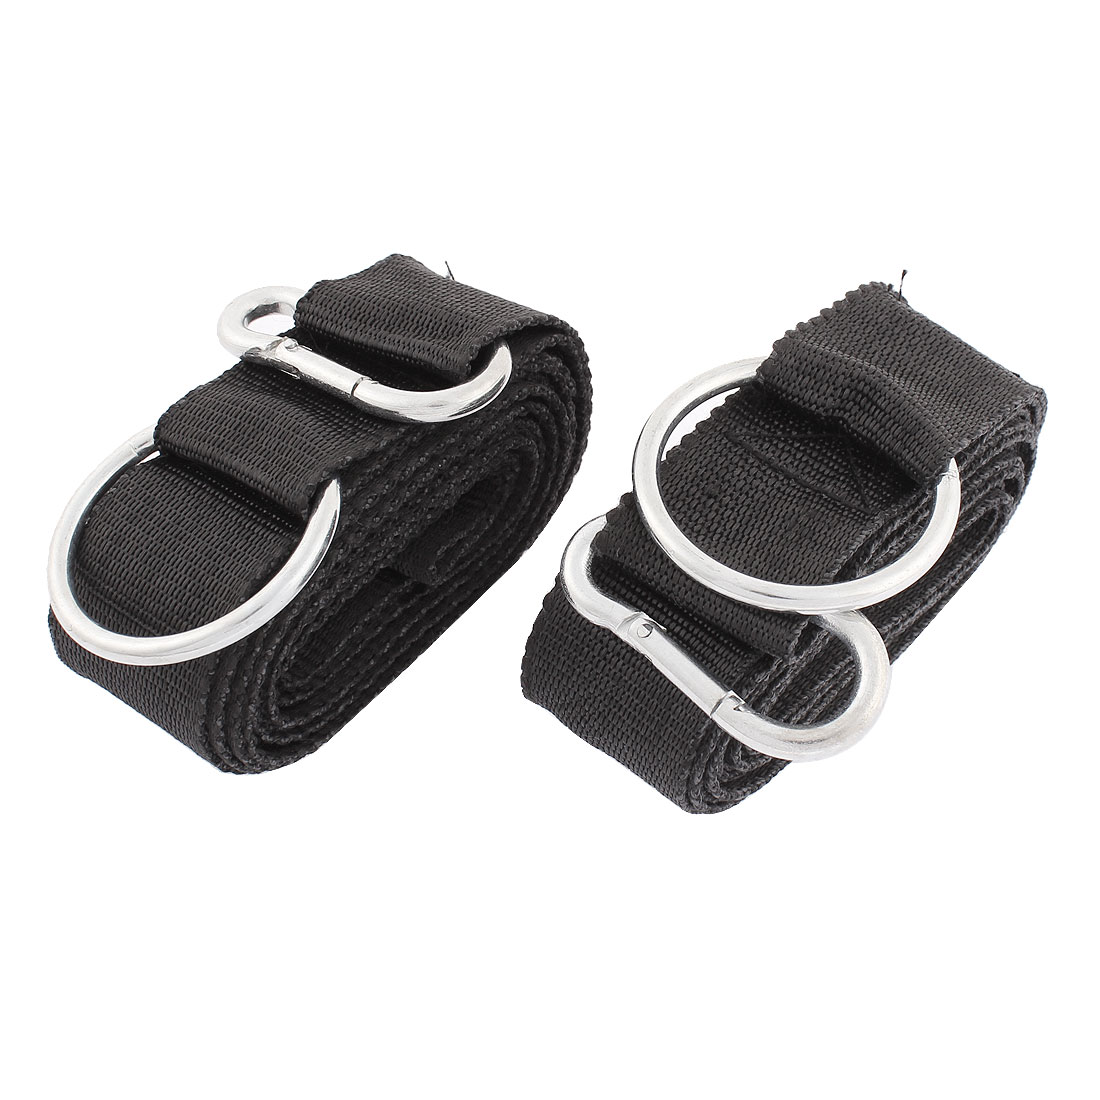 2Pcs Metal Ring Carabiner Hook Clip Black Nylon Hanging Hammock Strap Safety Belt Band 250cm x 3.8cm